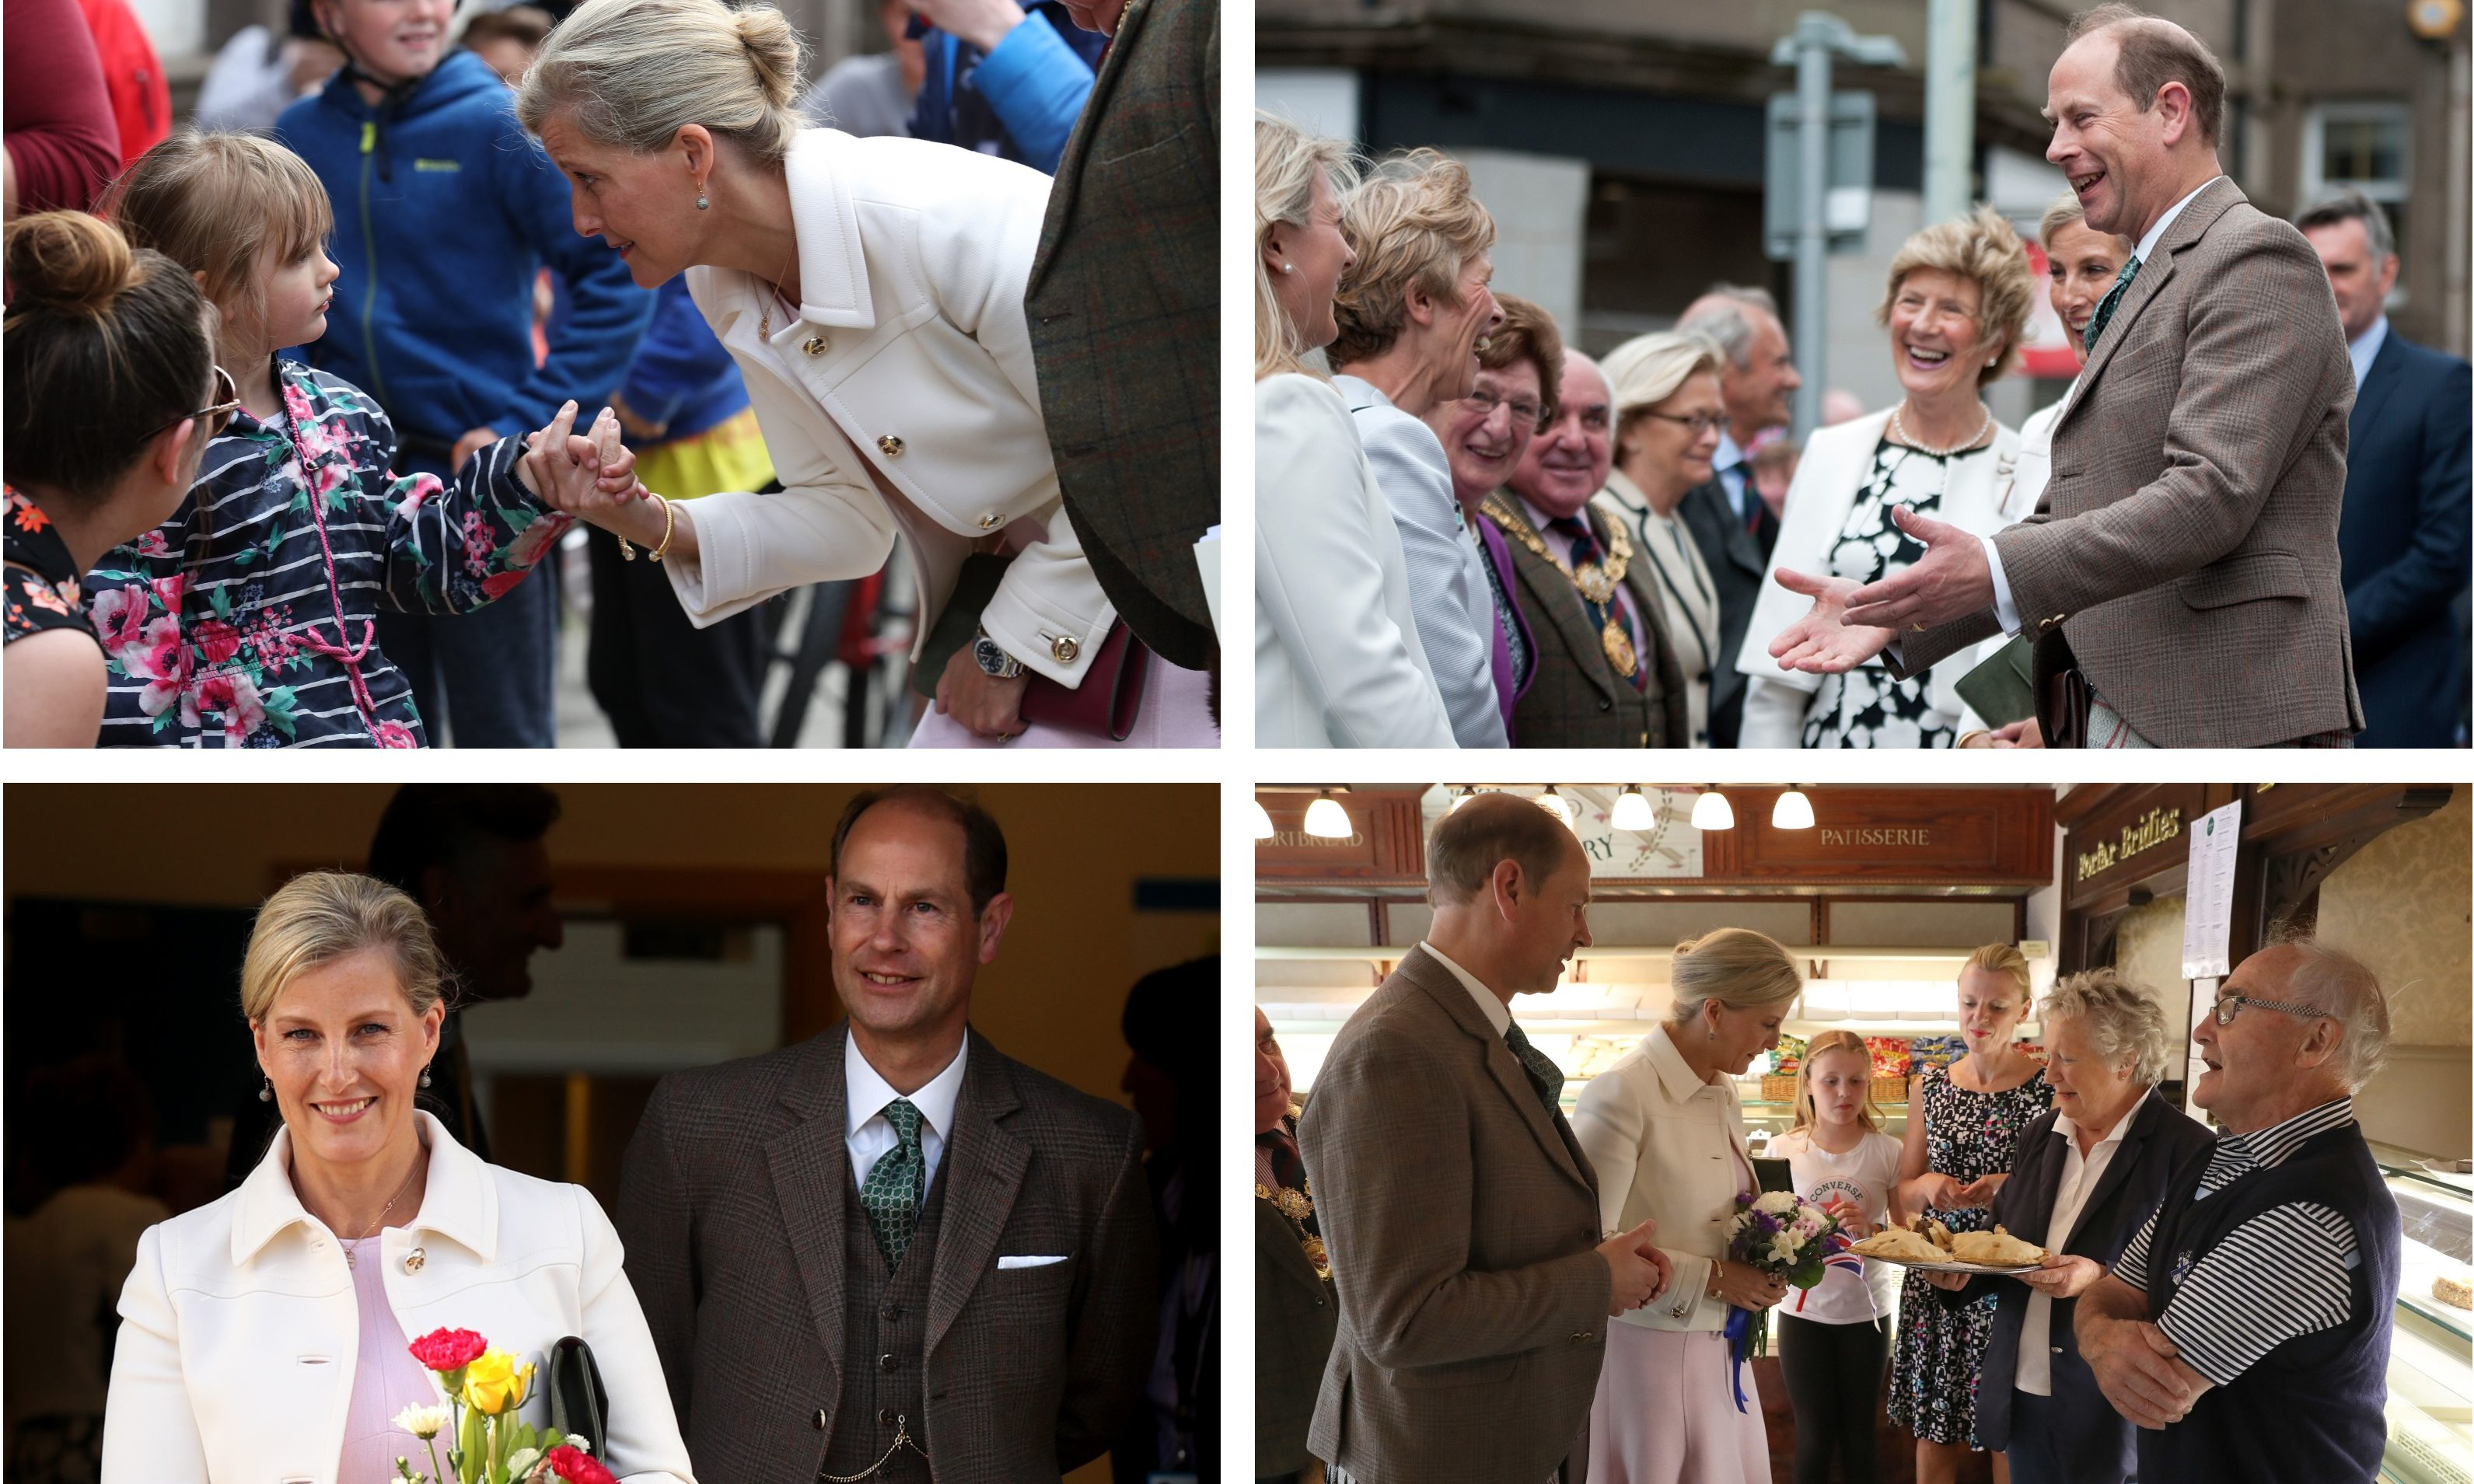 The Earl and Countess of Forfar pay their first visit to the town.